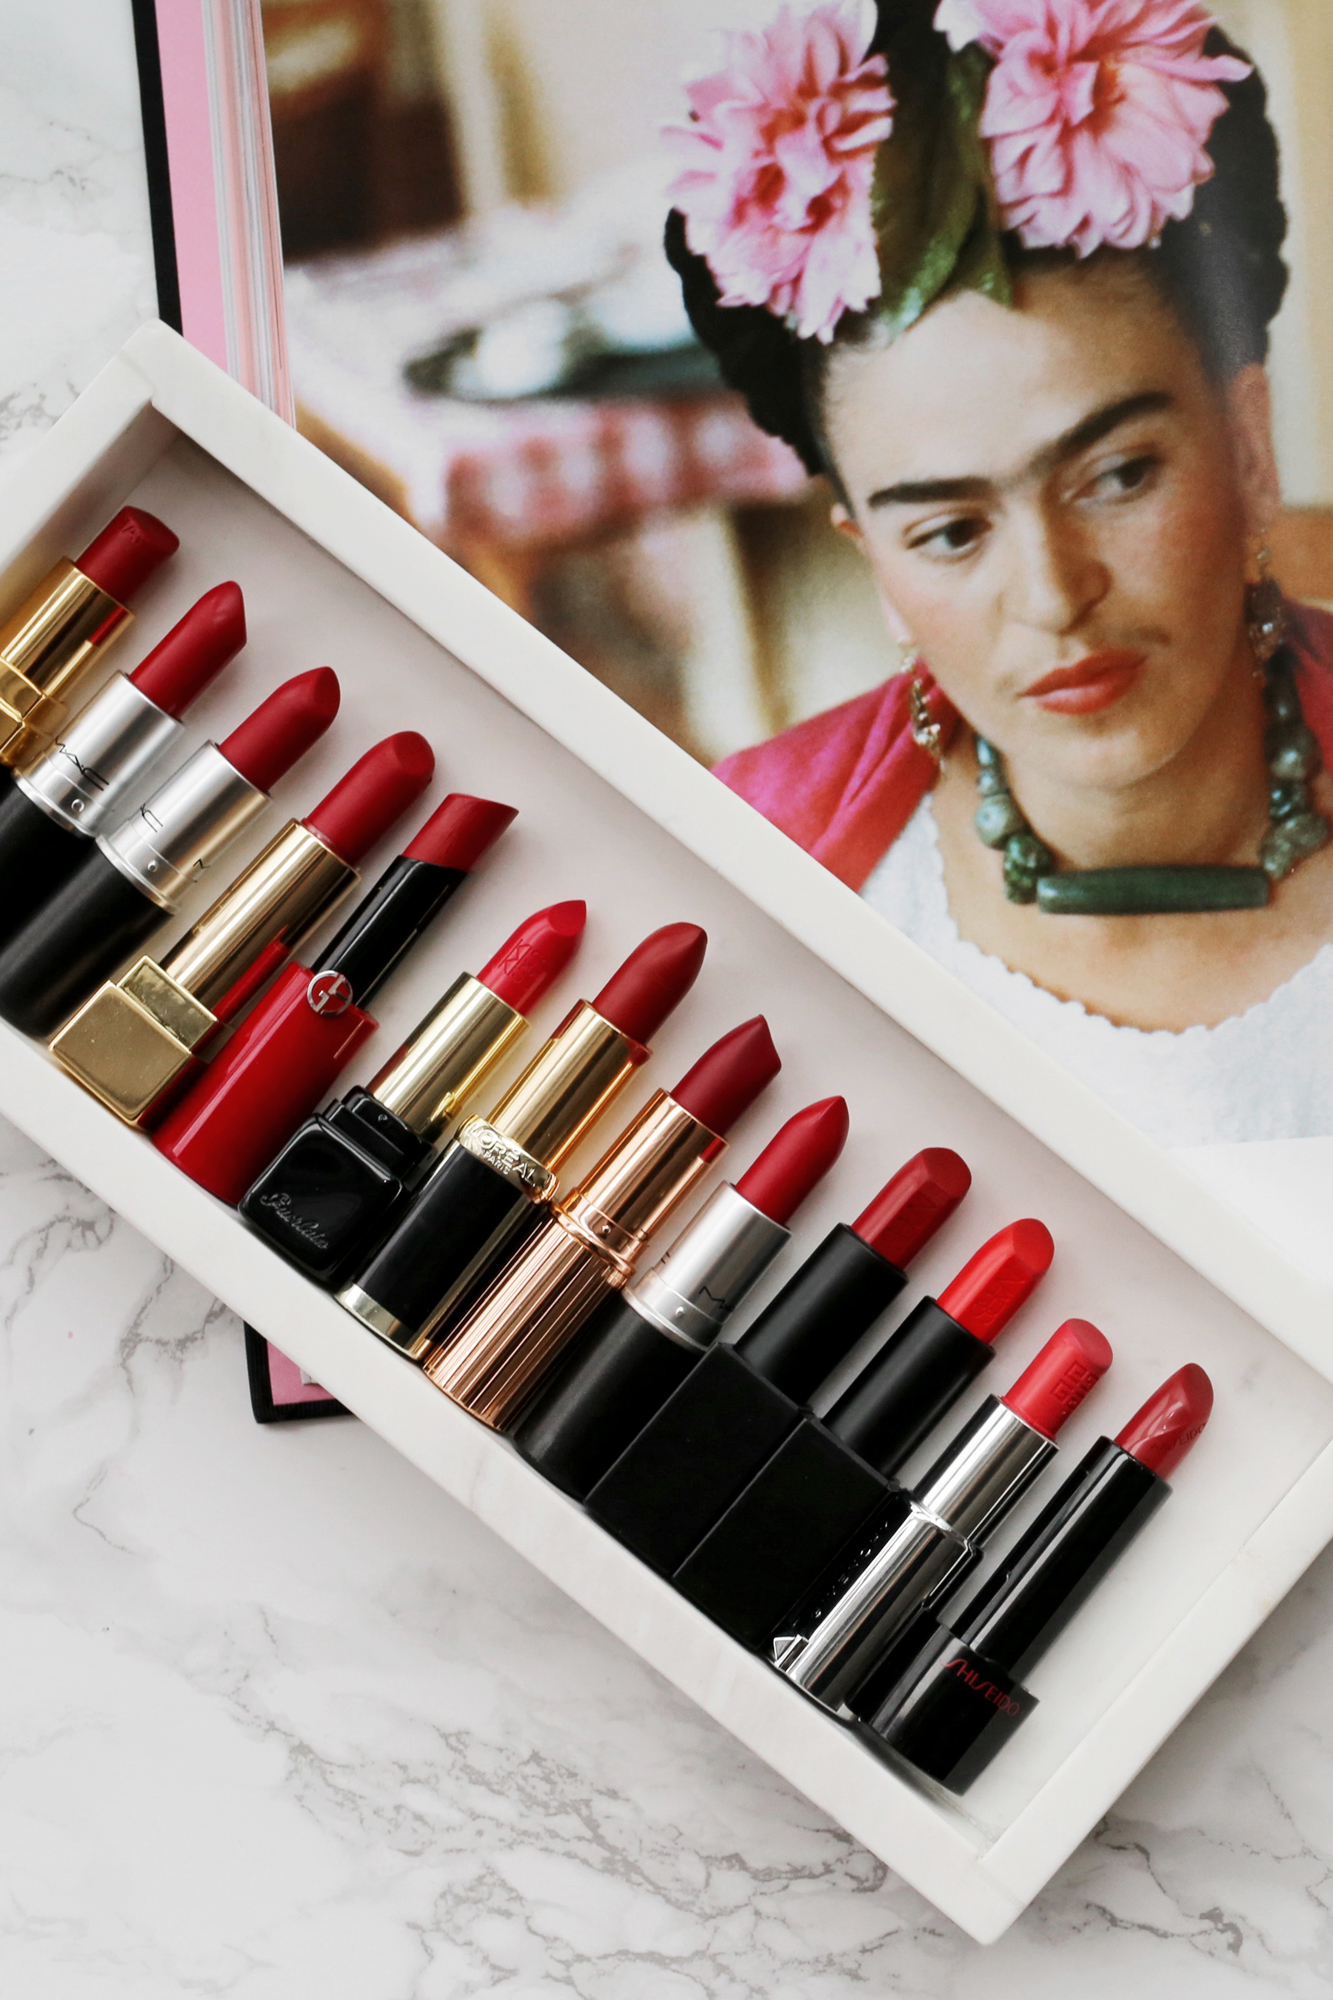 The Perfect Red Lipstick For The Holidays - for everyone - lipsick.me_5985.jpg